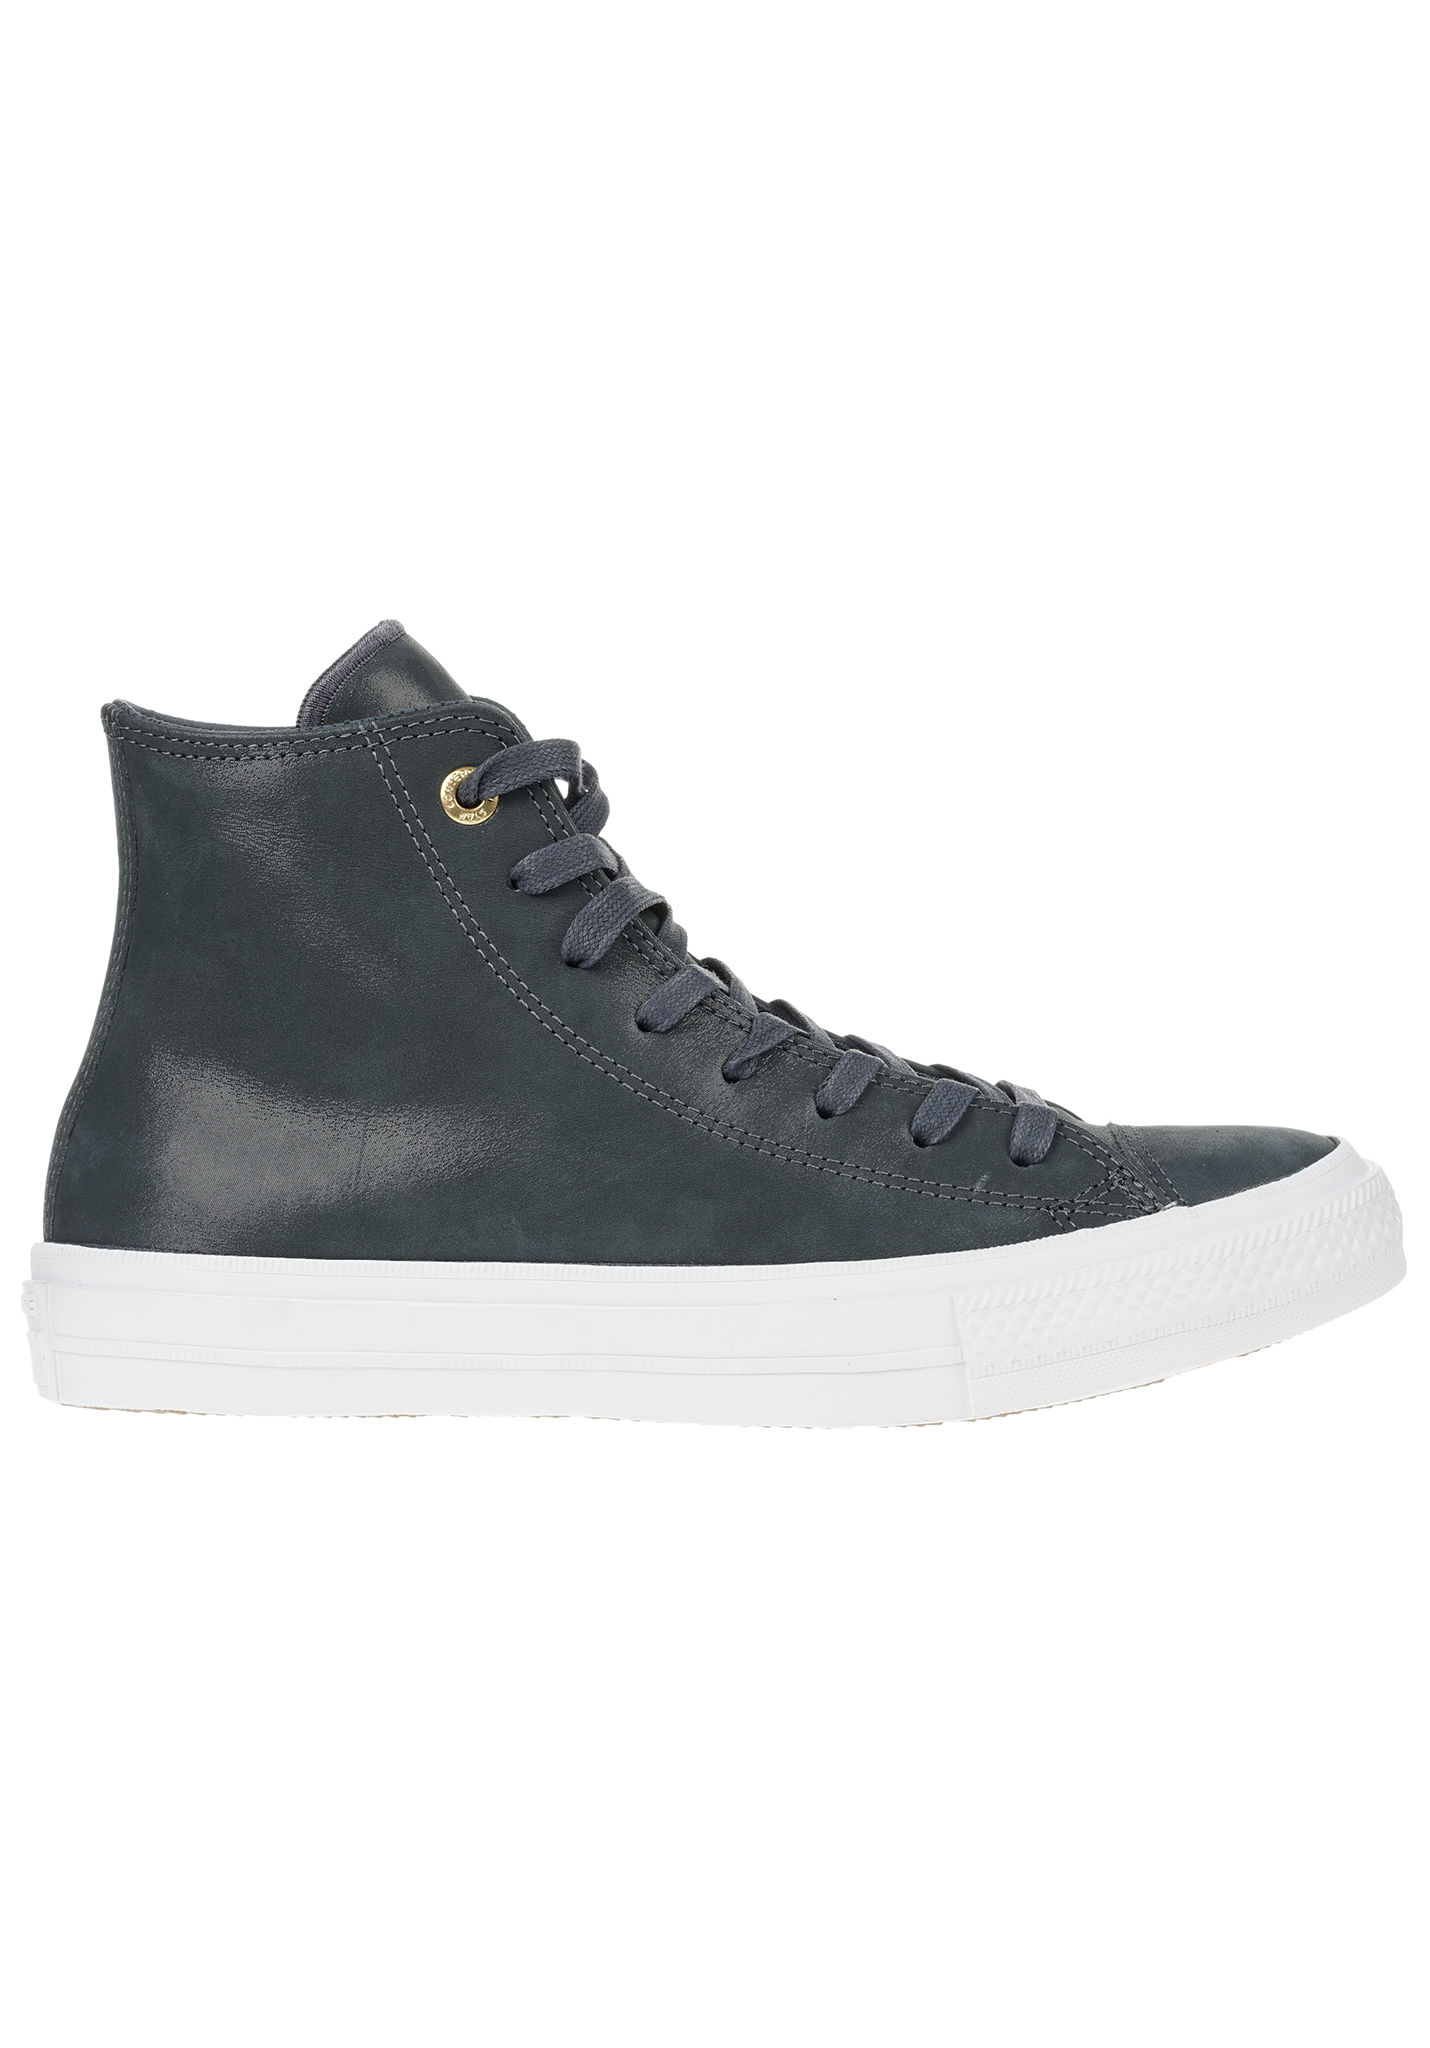 6bc5a8a93934 Converse Chuck Taylor All Star II Hi - Sneakers for Women - Grey - Planet  Sports